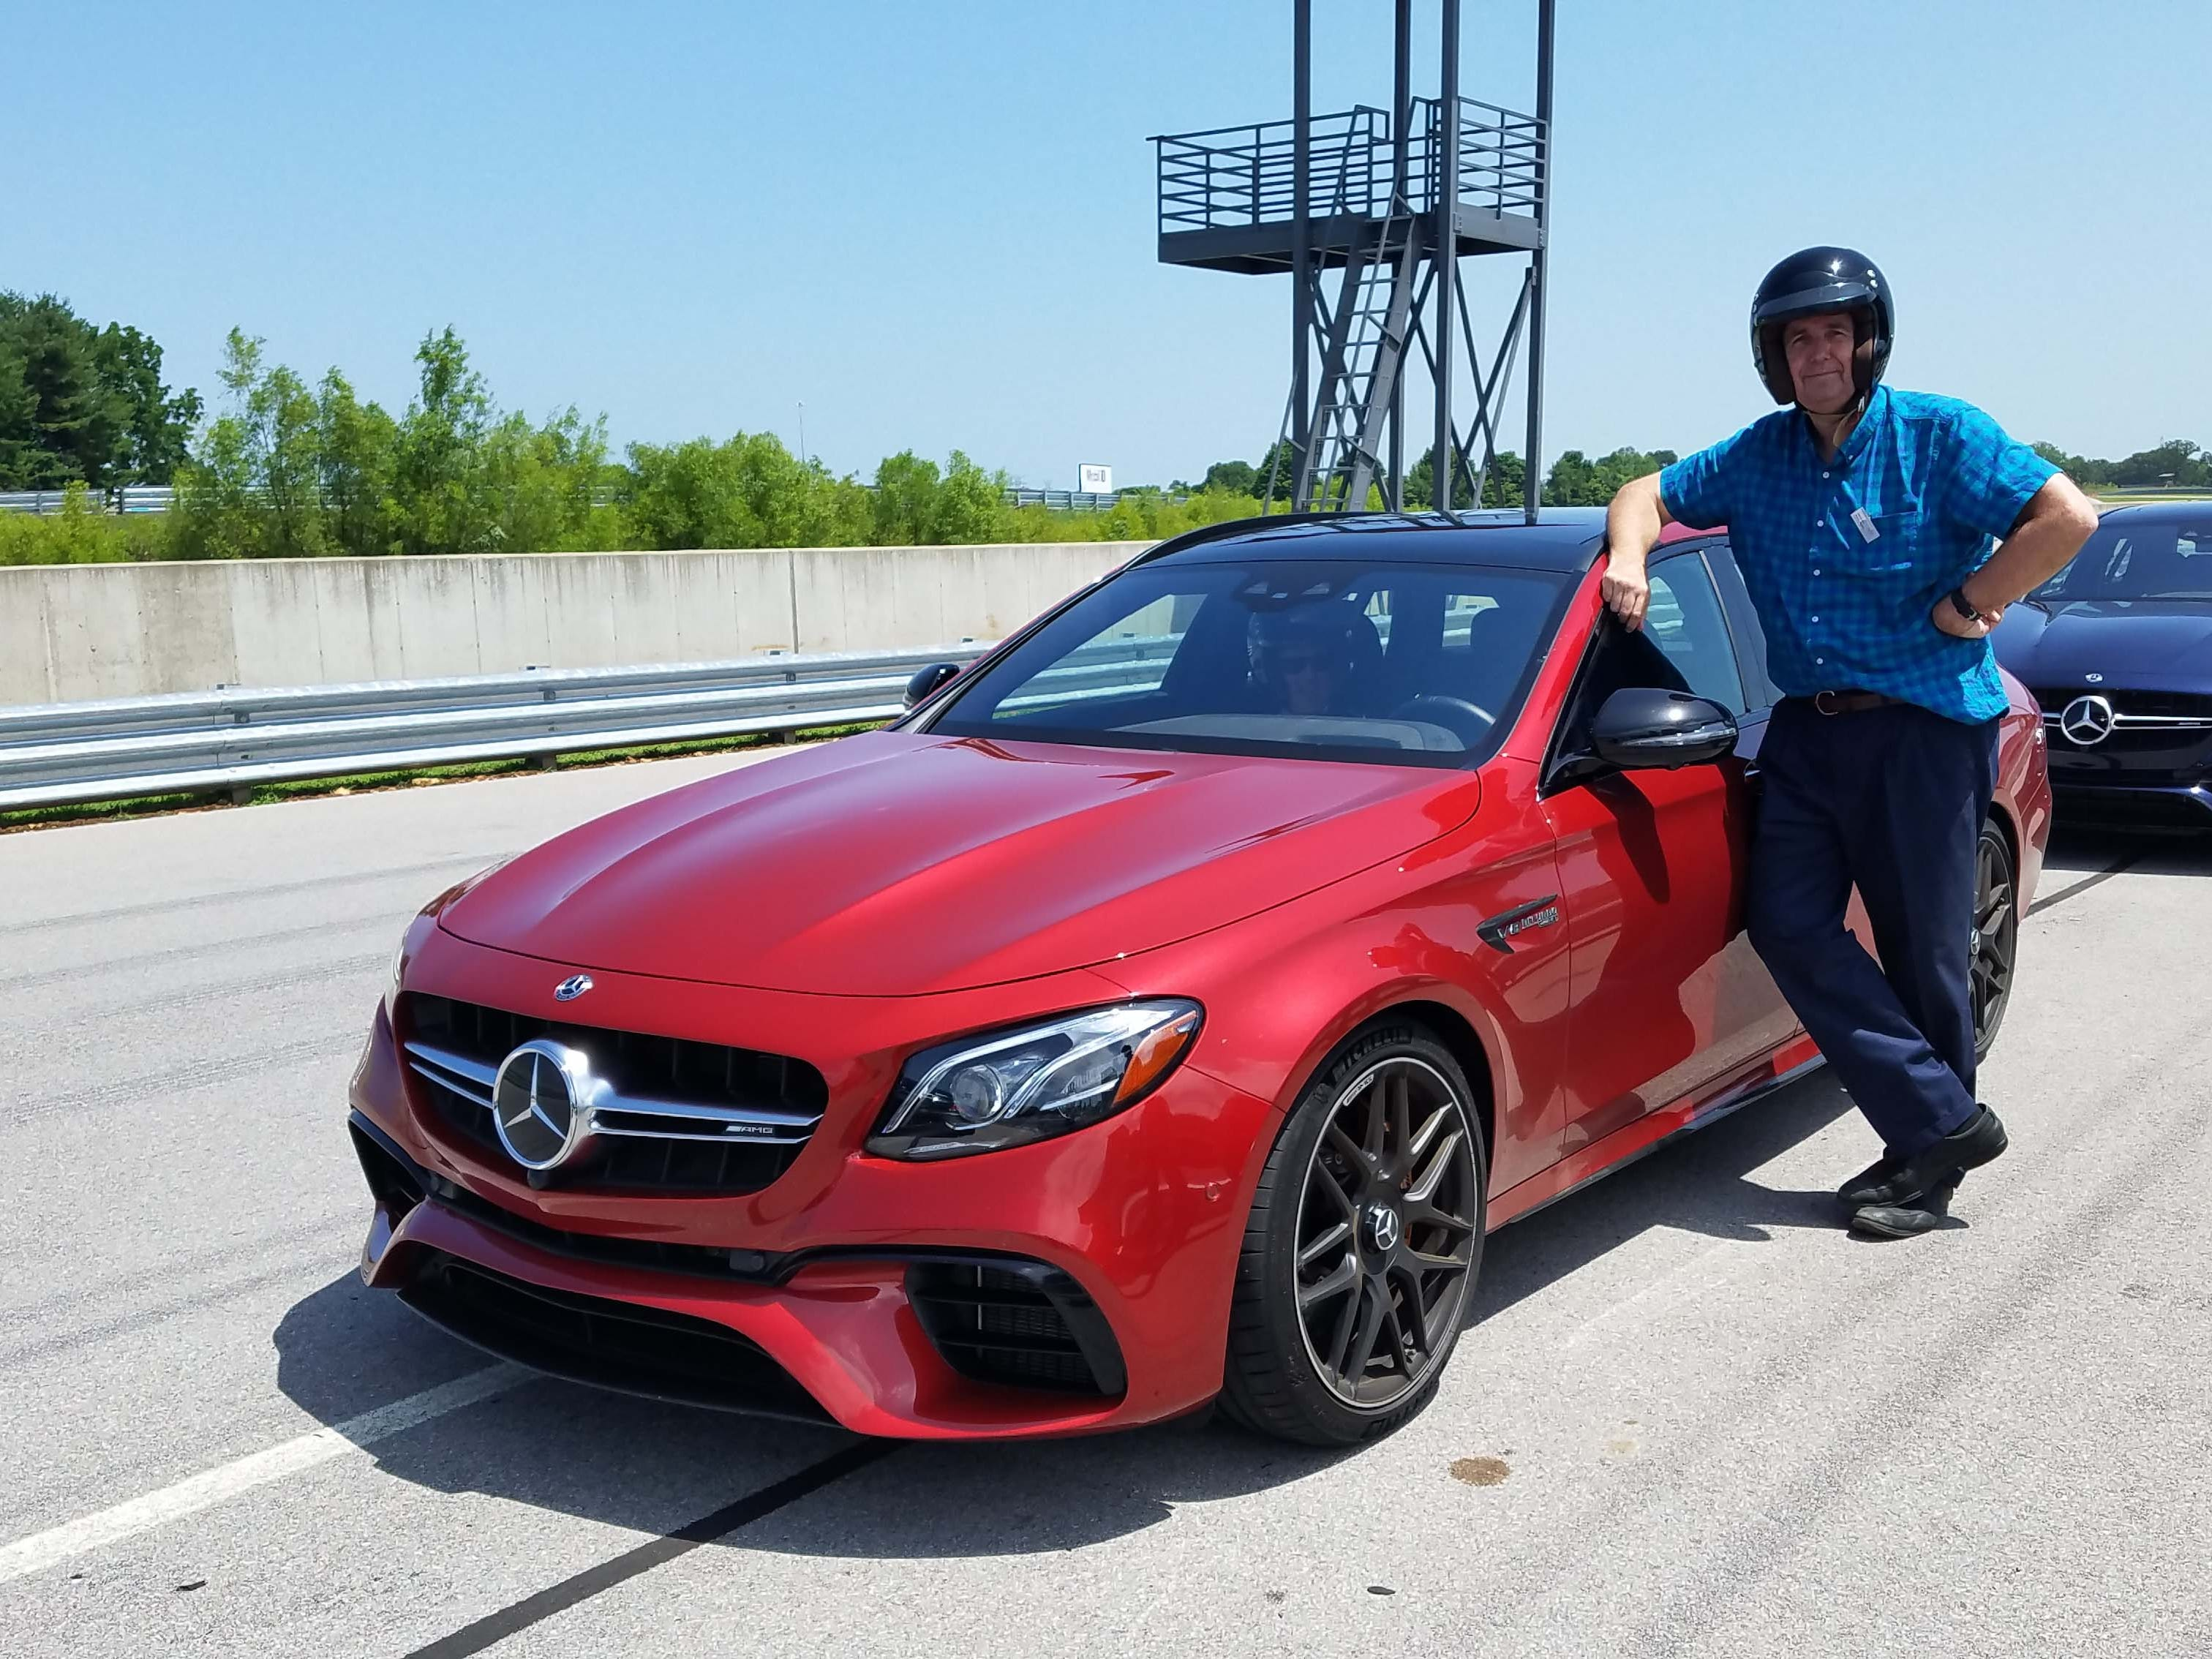 Detroit News auto critic Henry Payne took the Mercedes-AMG E63 S wagon out for some hot laps around the National Corvette Museum test track.